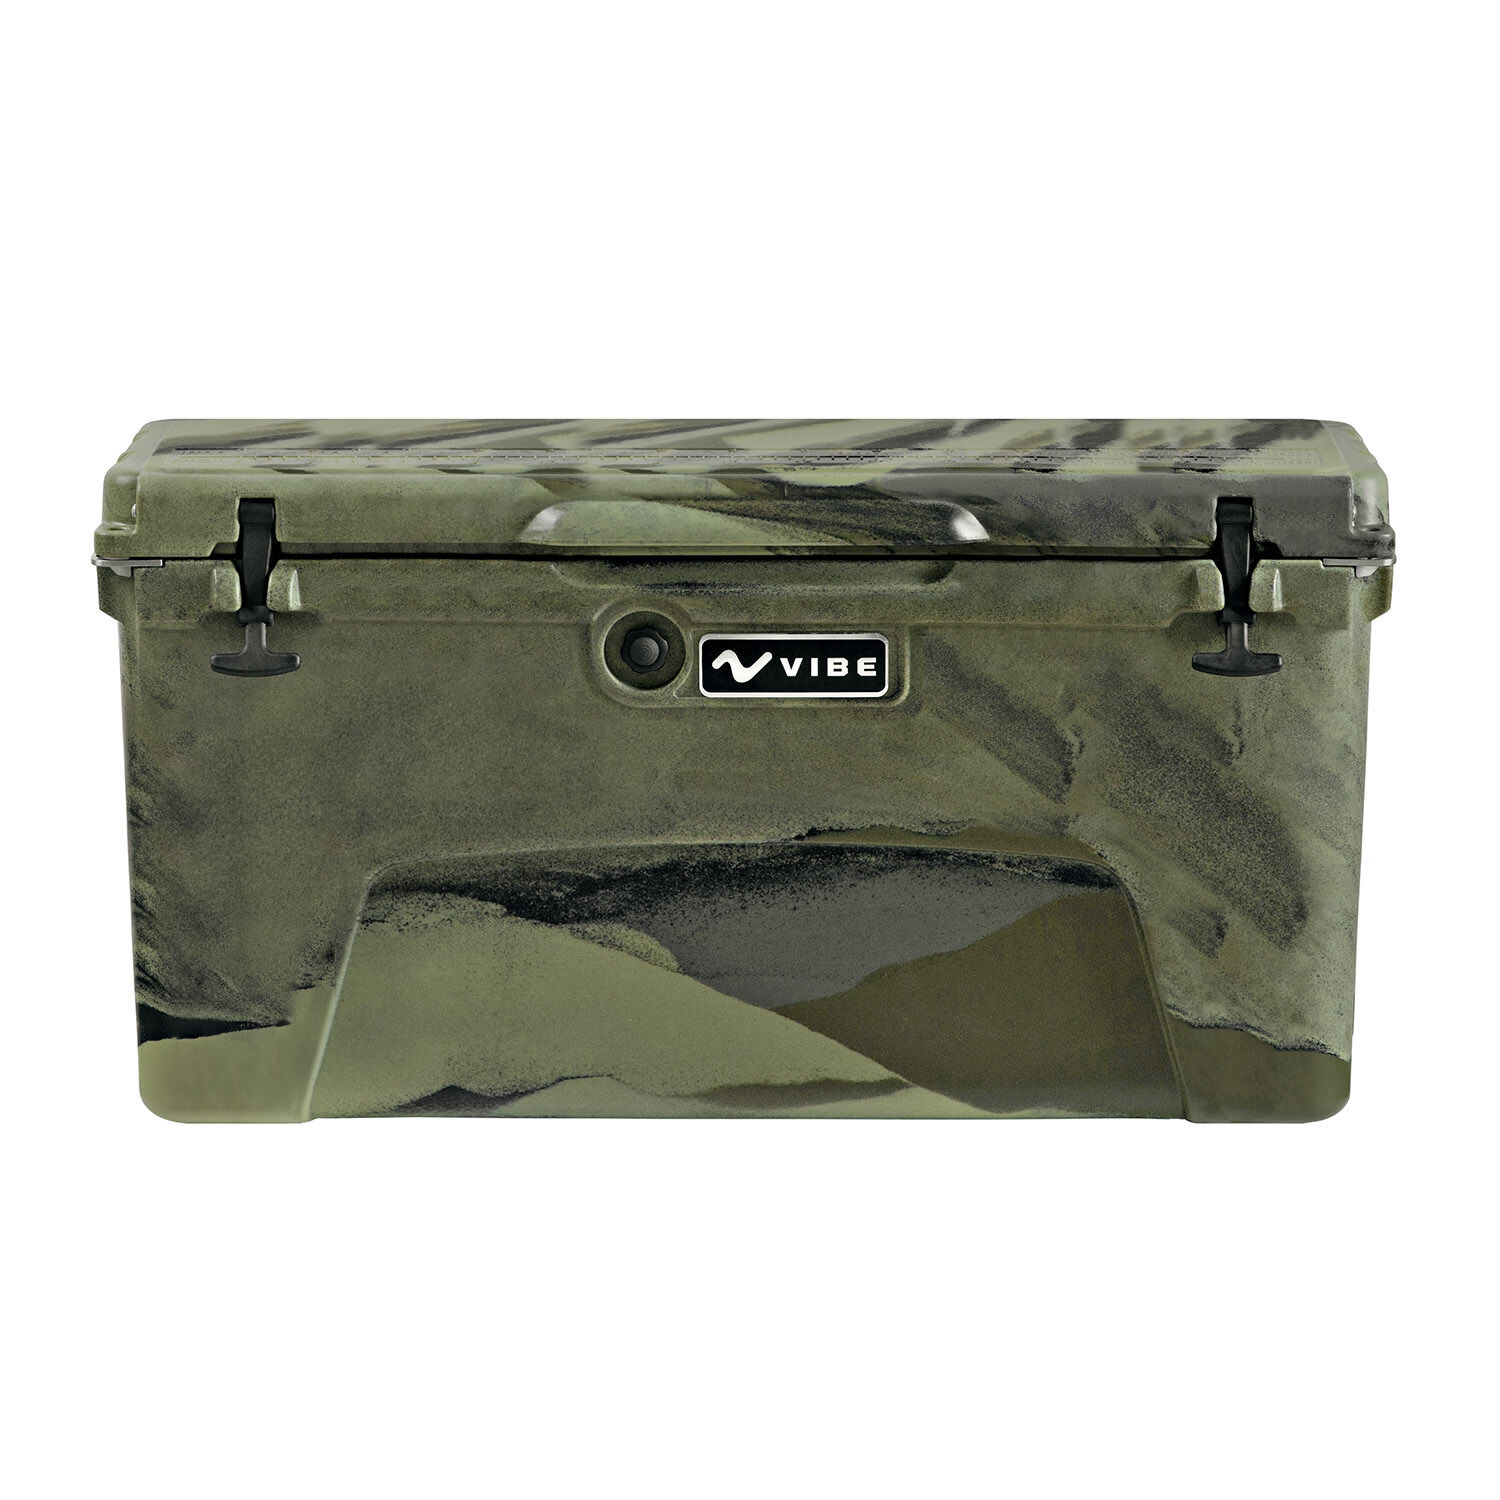 Vibe Heavy Duty 75 Quart redo Molded Cooler Ice Chest with Bottle Openers - Camo